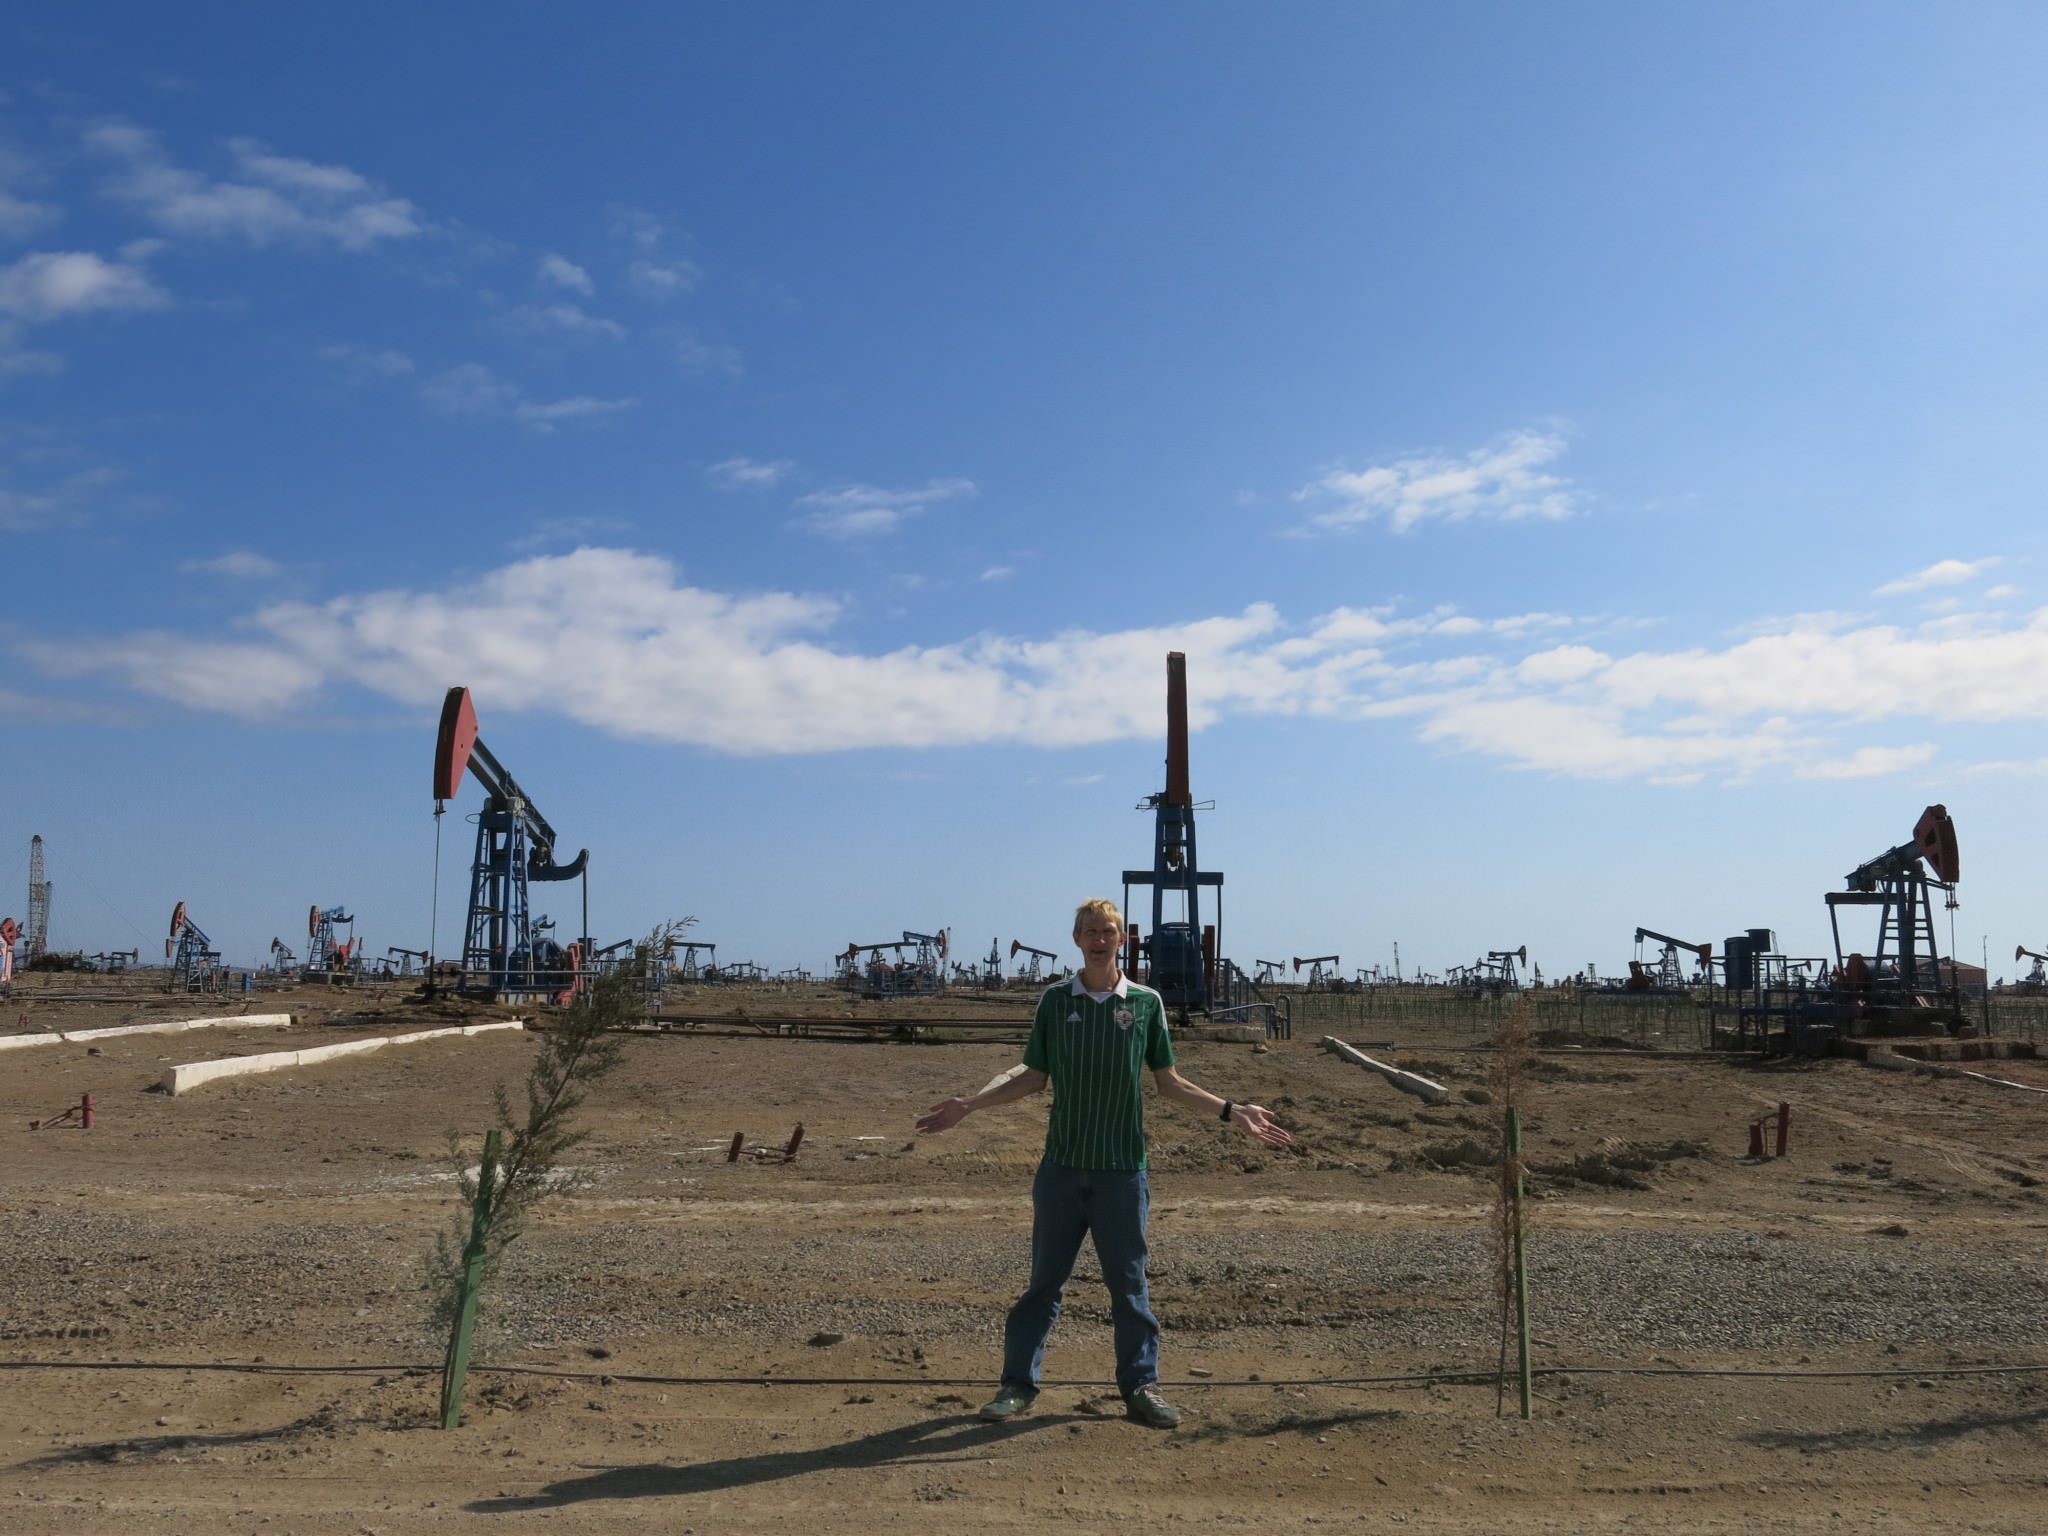 james bond oil fields azerbaijan